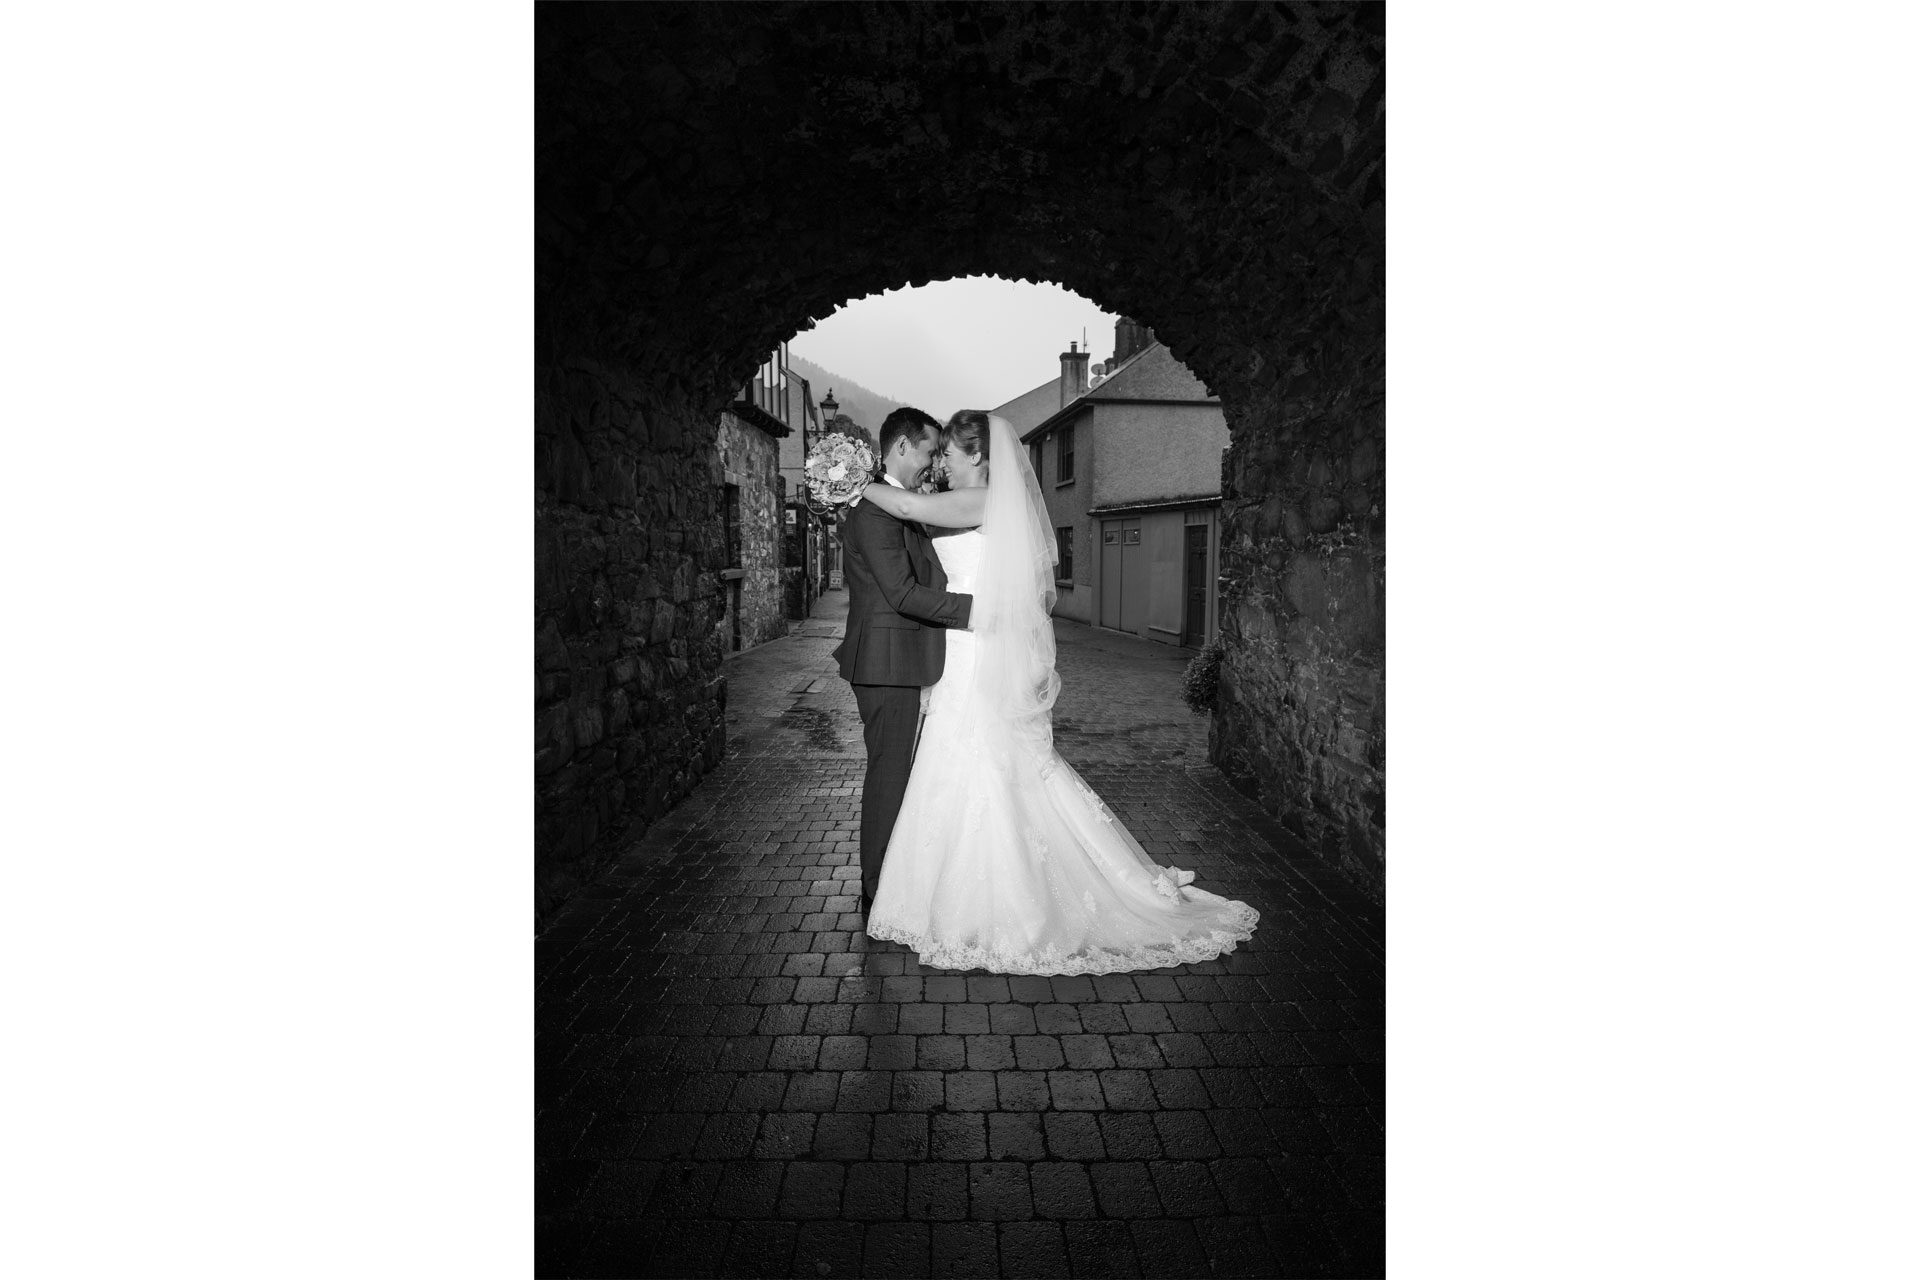 Photo of Ruth and Robert on their wedding day, captured at Carlingford, Co. Louth, Ireland.